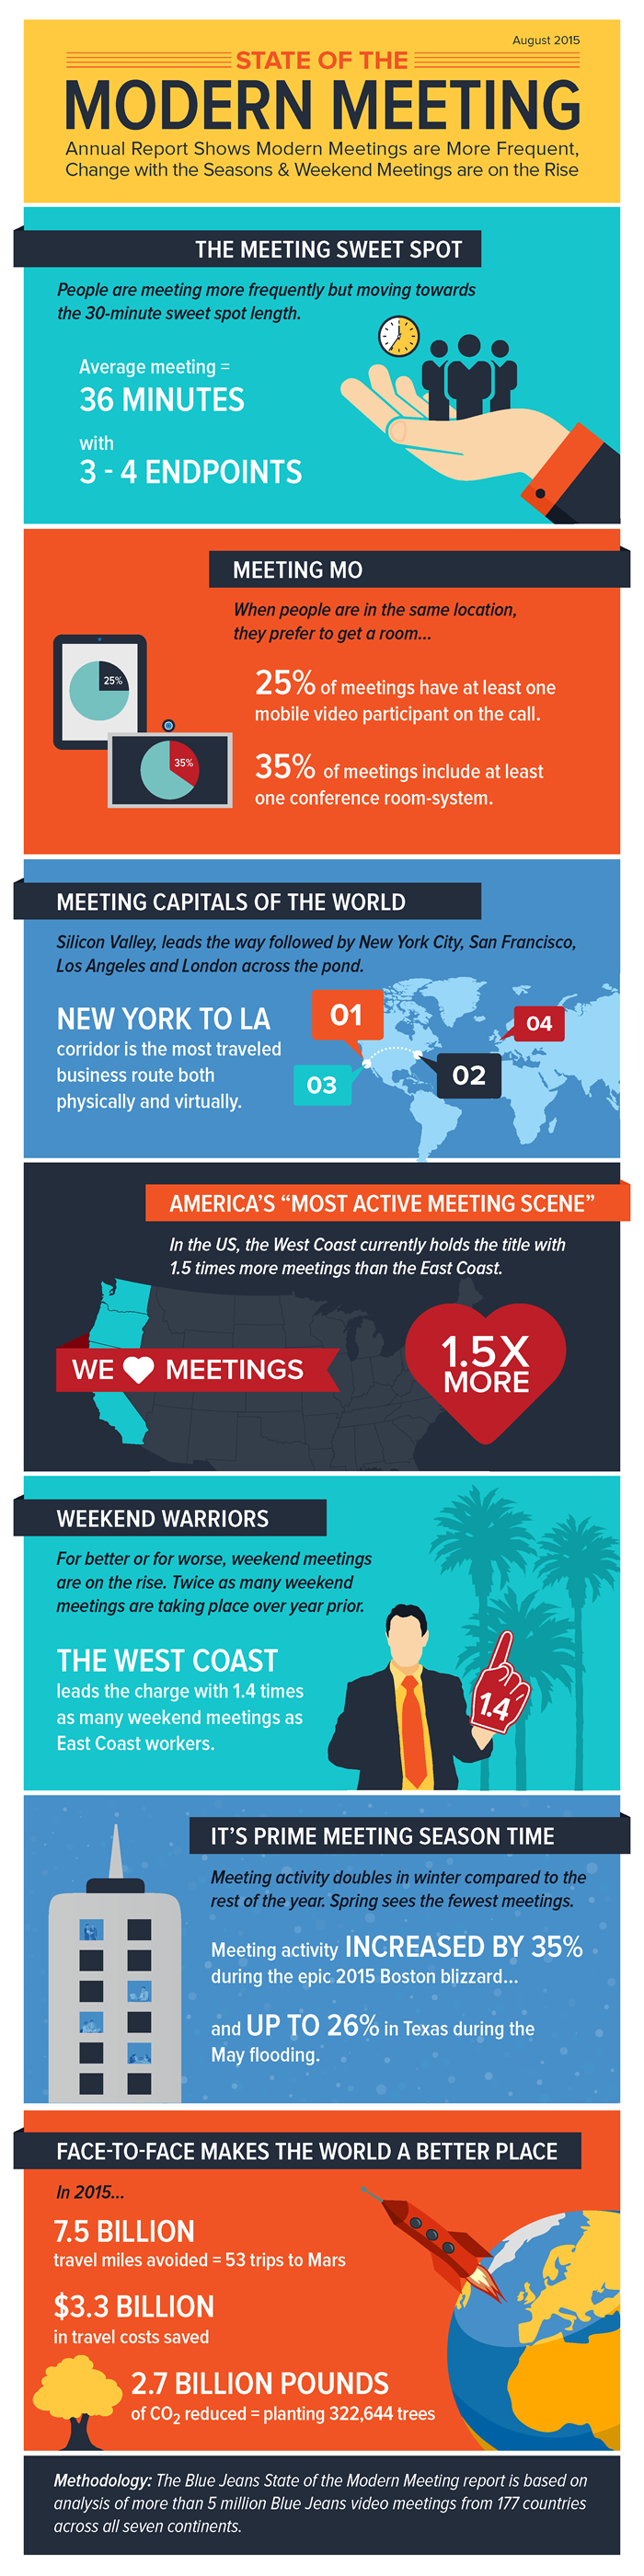 State of the Modern Meeting [Infographic]